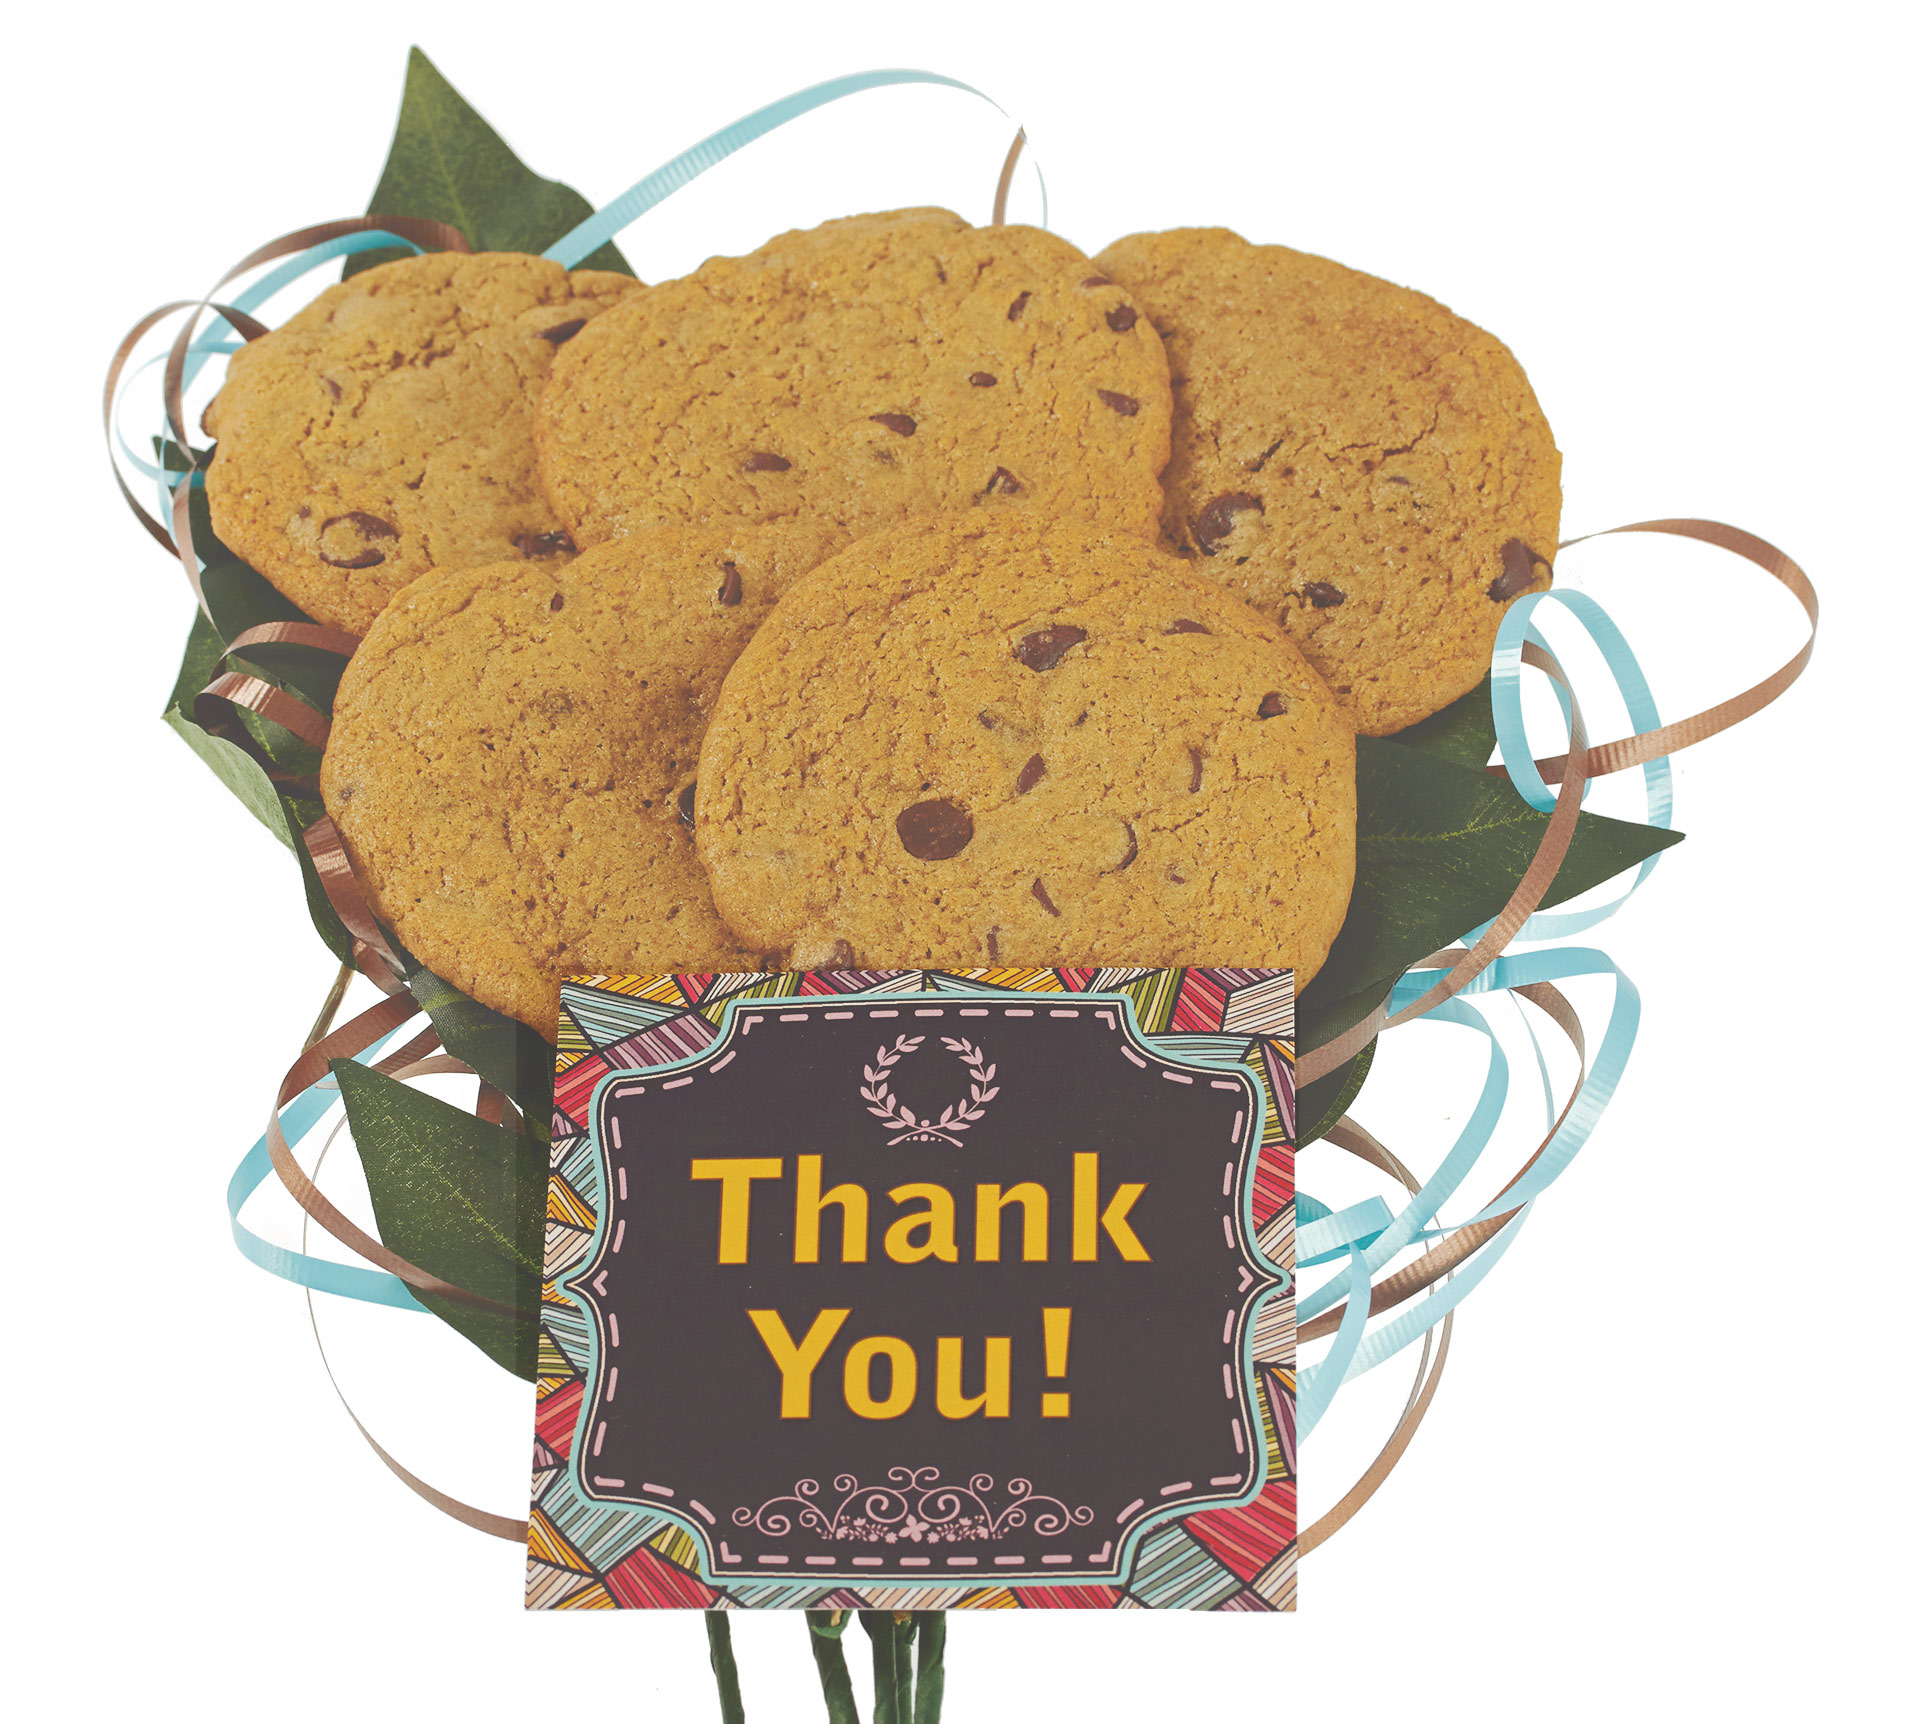 Thank you gluten free vegan cookie bouquet